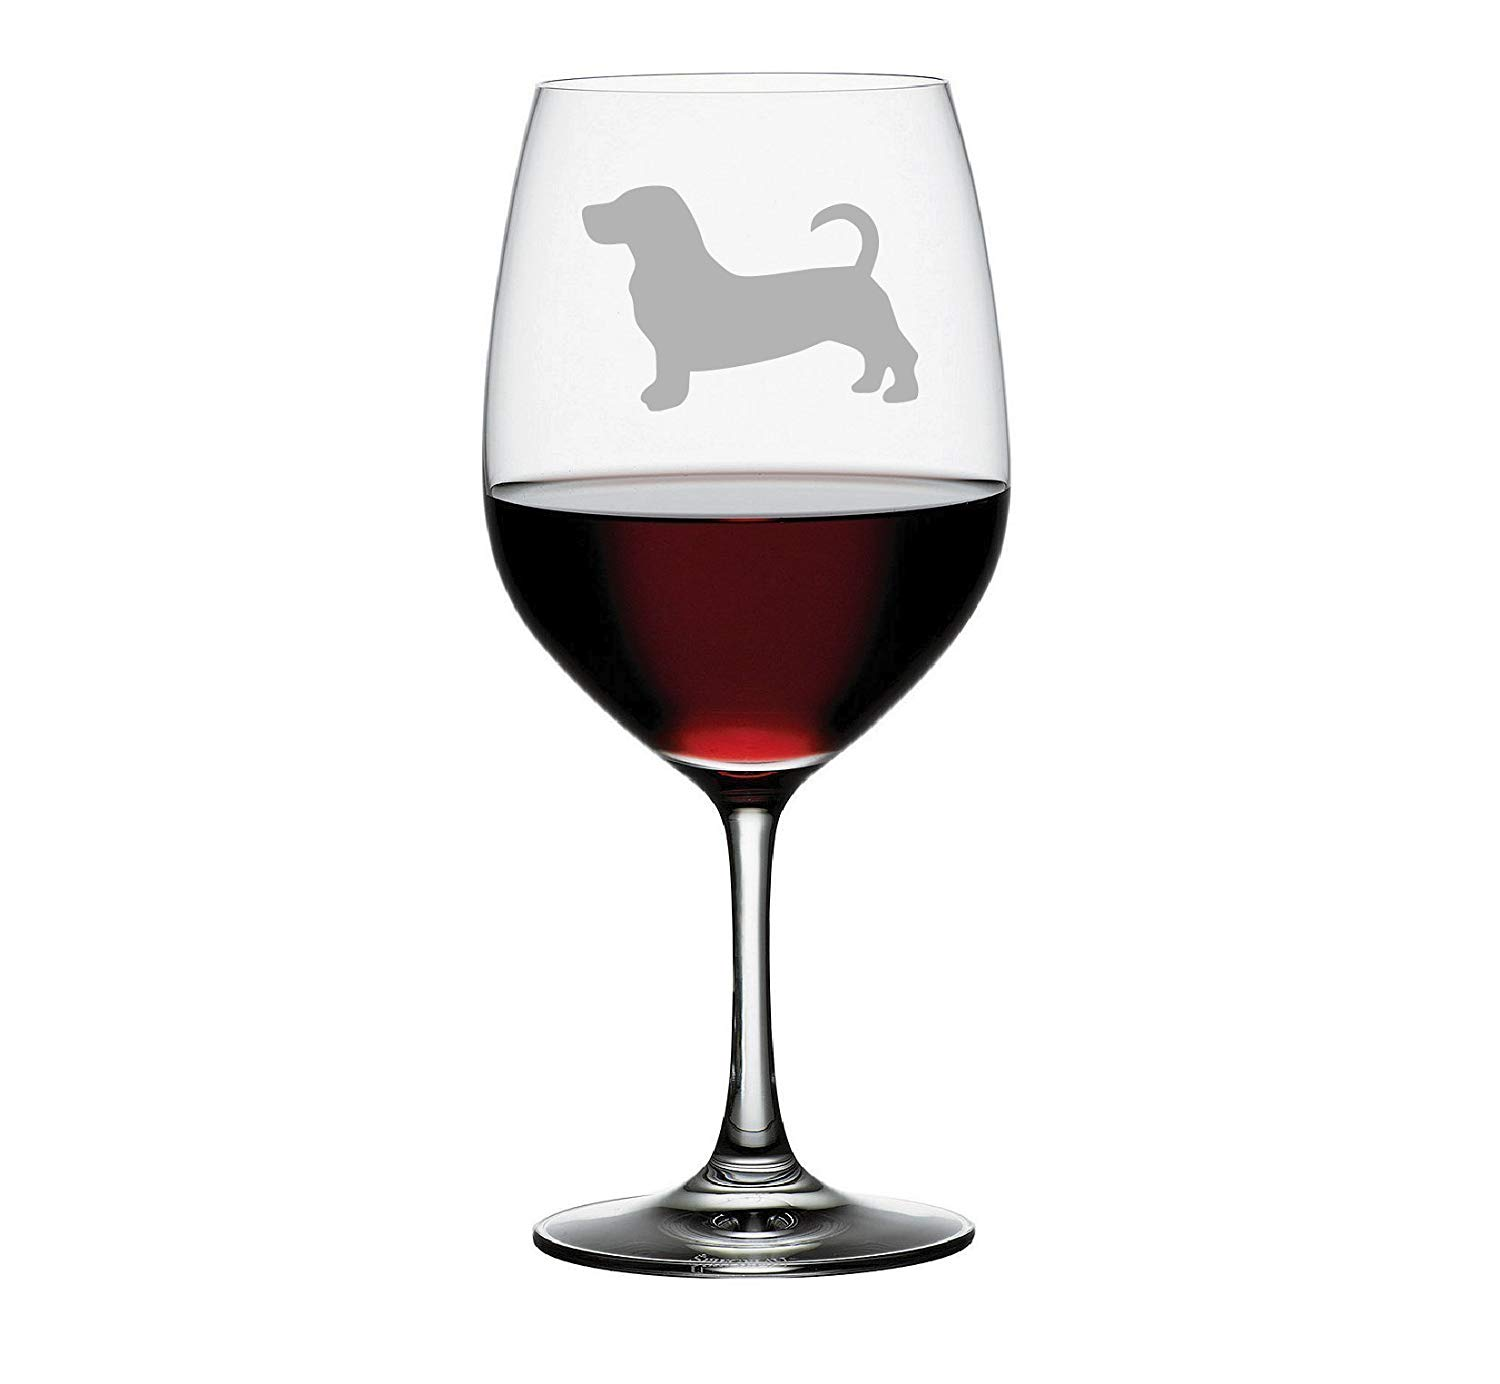 Basset Hound Etched Stemless Wine glass, Pint Glass, Stemmed wine Glass, Rocks glass, Pilsner or Nonic Pint glass